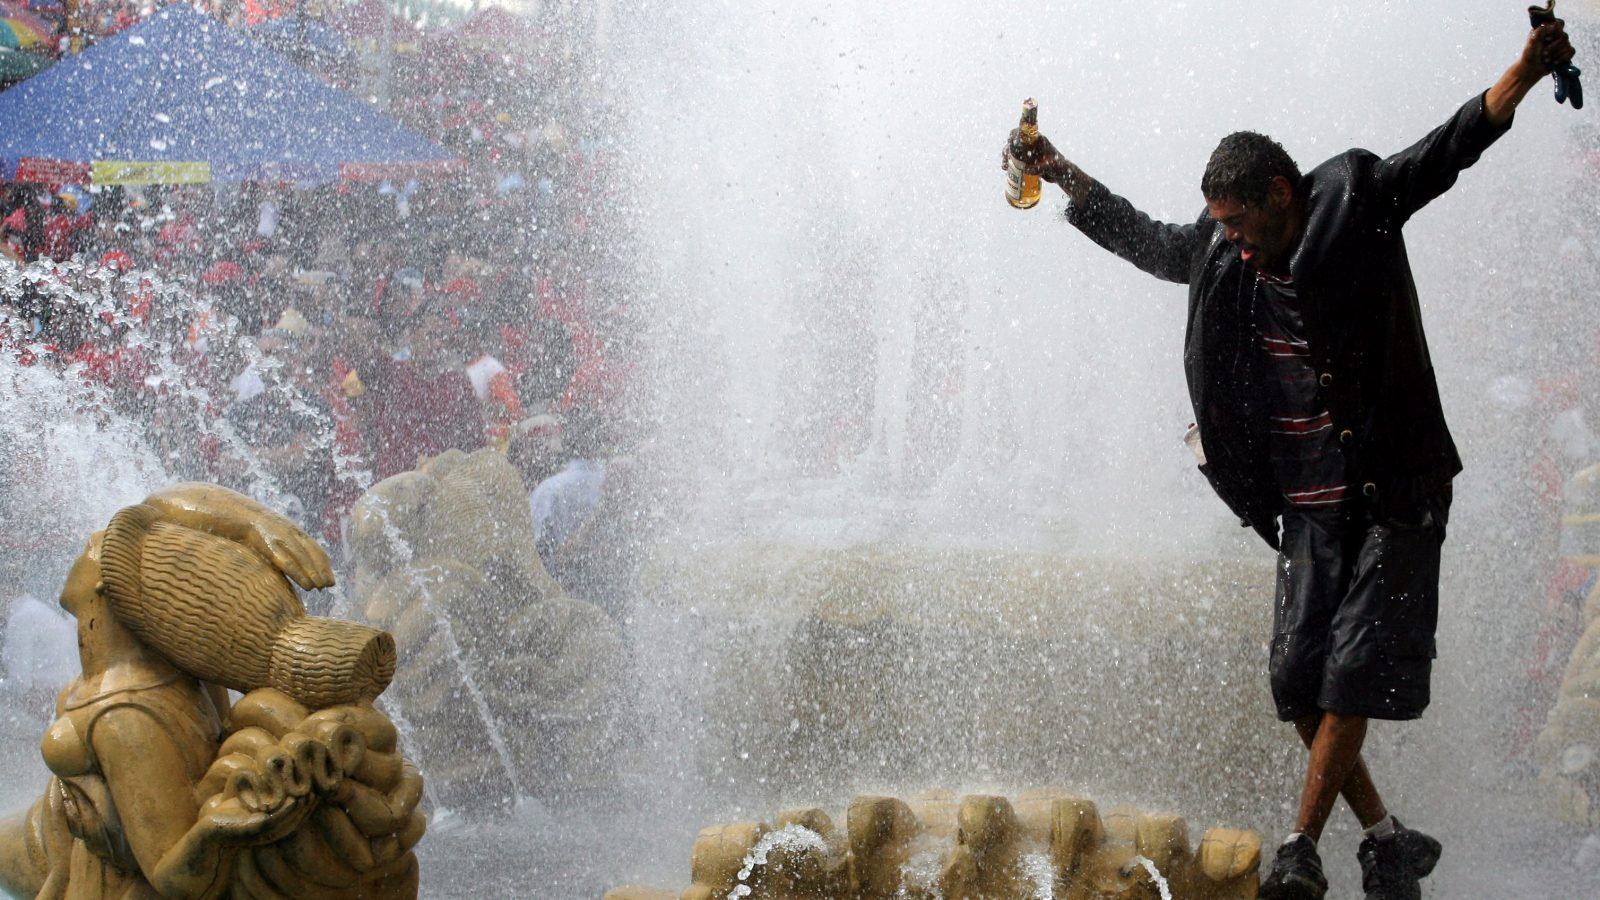 A drunk man plays in a fountain during President Hugo Chavez's campaign rally in Caracas September 1, 2006. REUTERS/Jorge Silva   (VENEZUELA) - RTR1GWOW